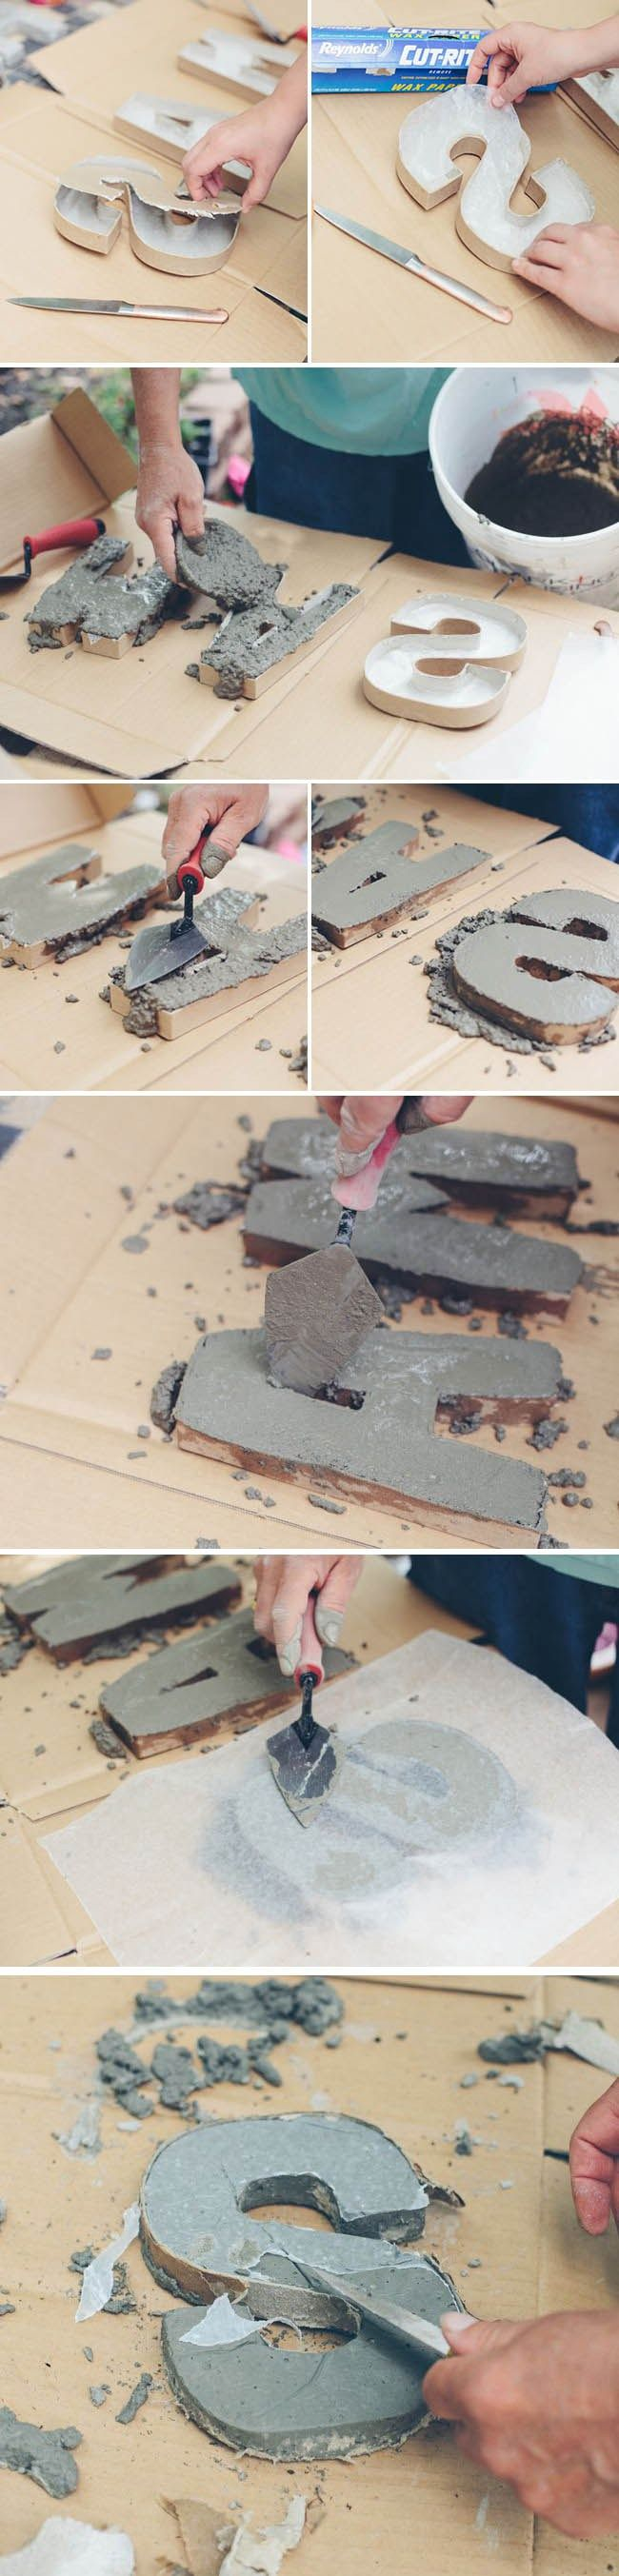 How to make cement letters with Fast dry cement, Cardboard letter shapes & Wax paper  | Hello Glow